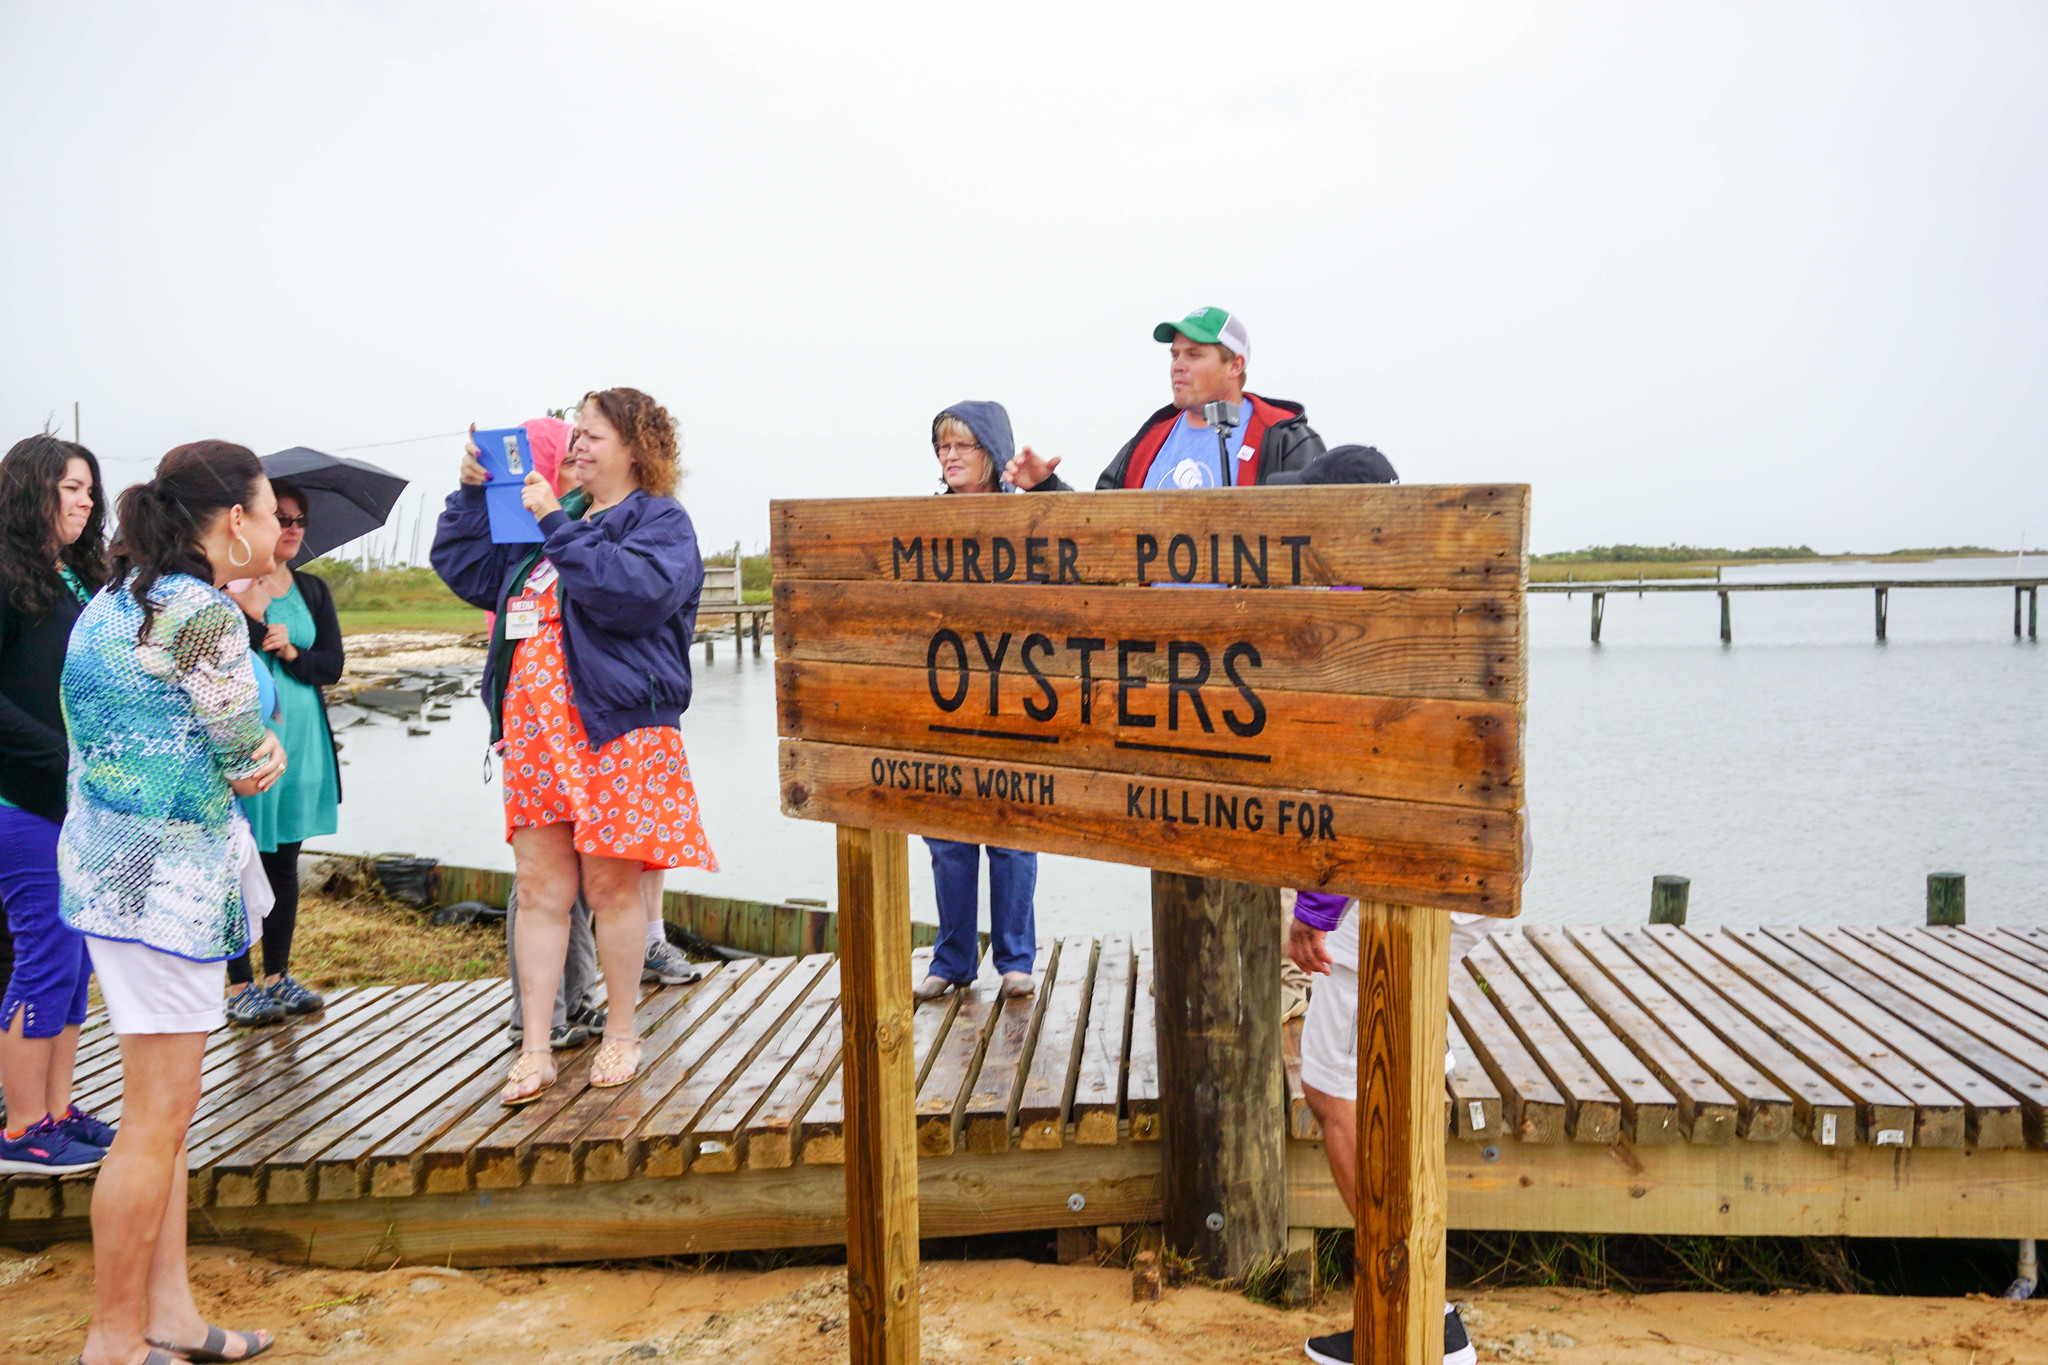 Murder Point Oyster Farm in Bayou la Batre, Ala., during - World Food Championships Blogger Summit, Orange Beach, Ala., Nov. 7 - 9, 2016